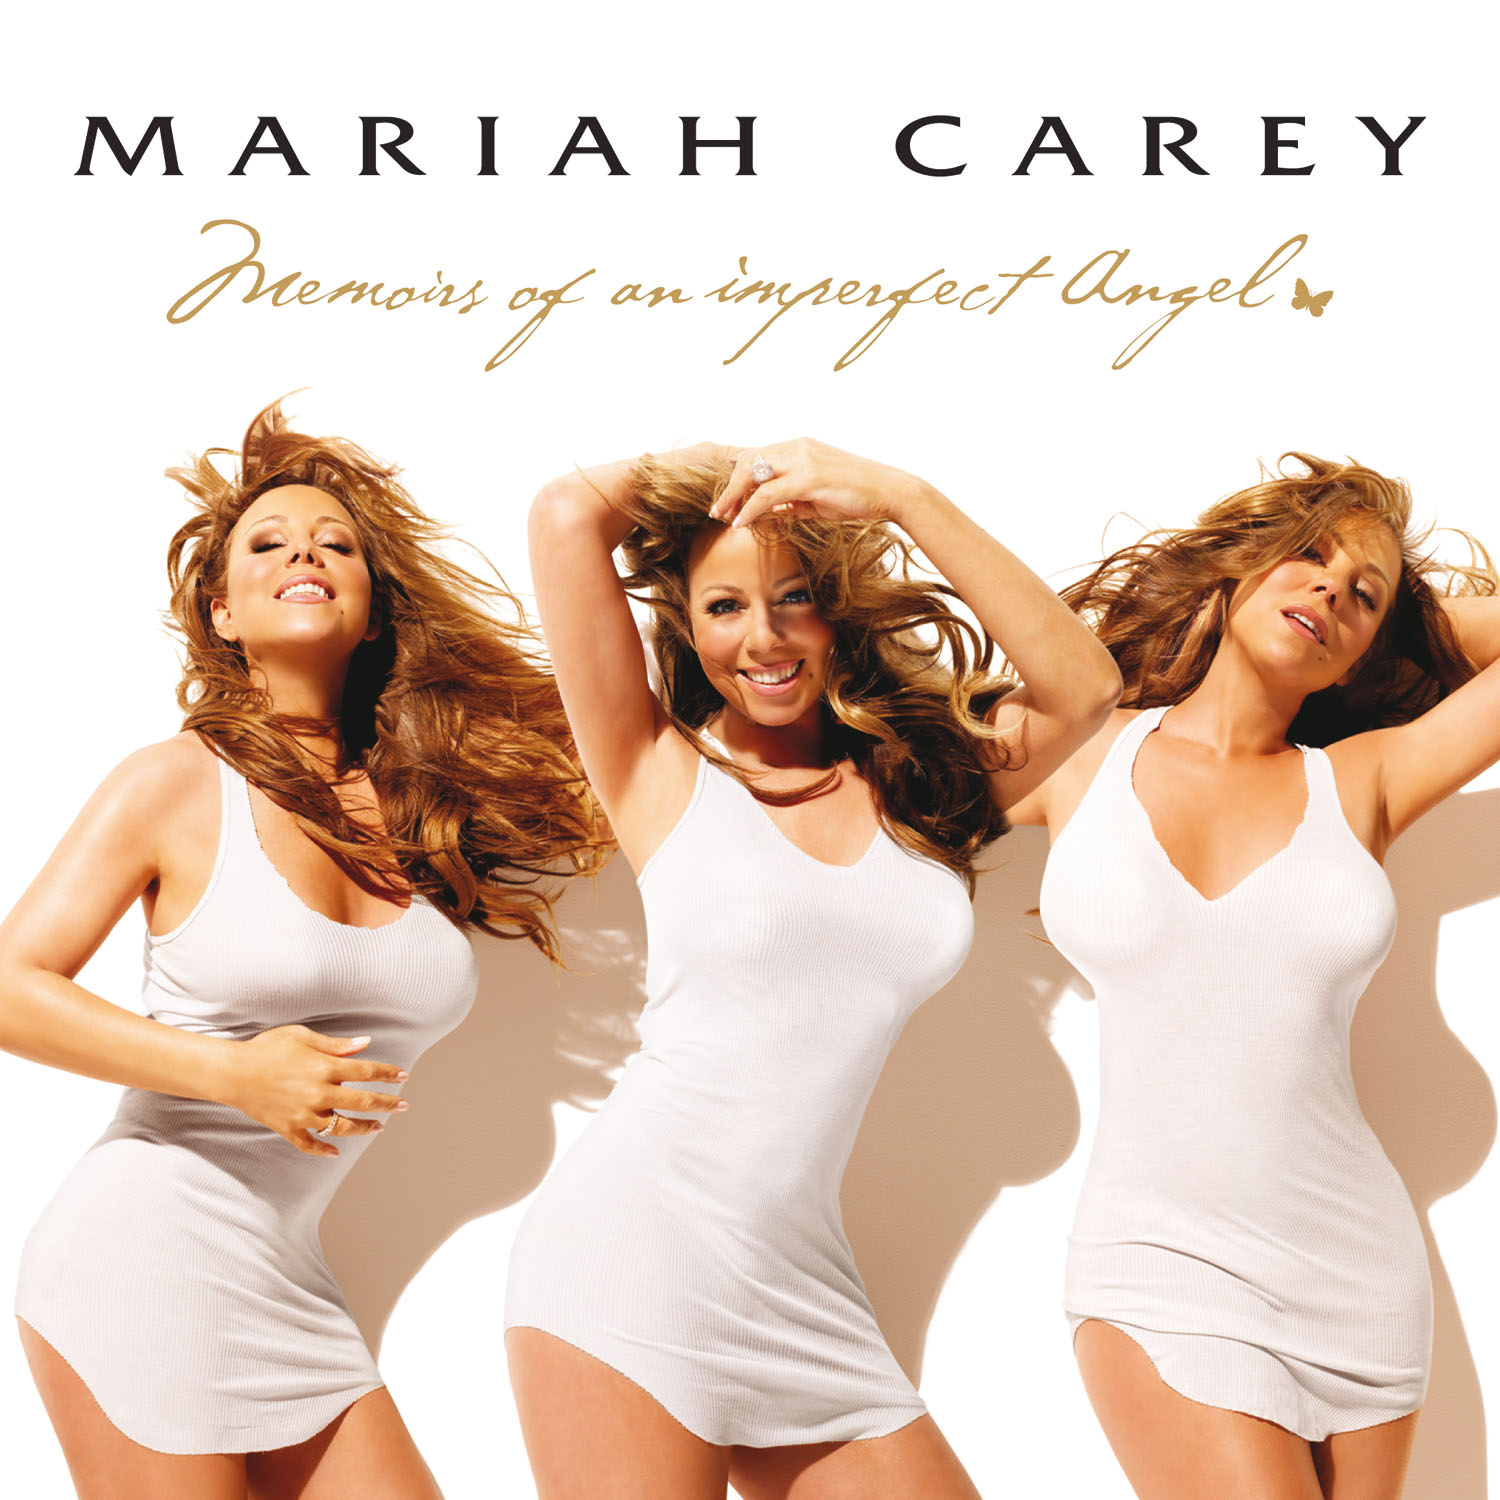 We're dealing with relationships here - - Mariah Carey